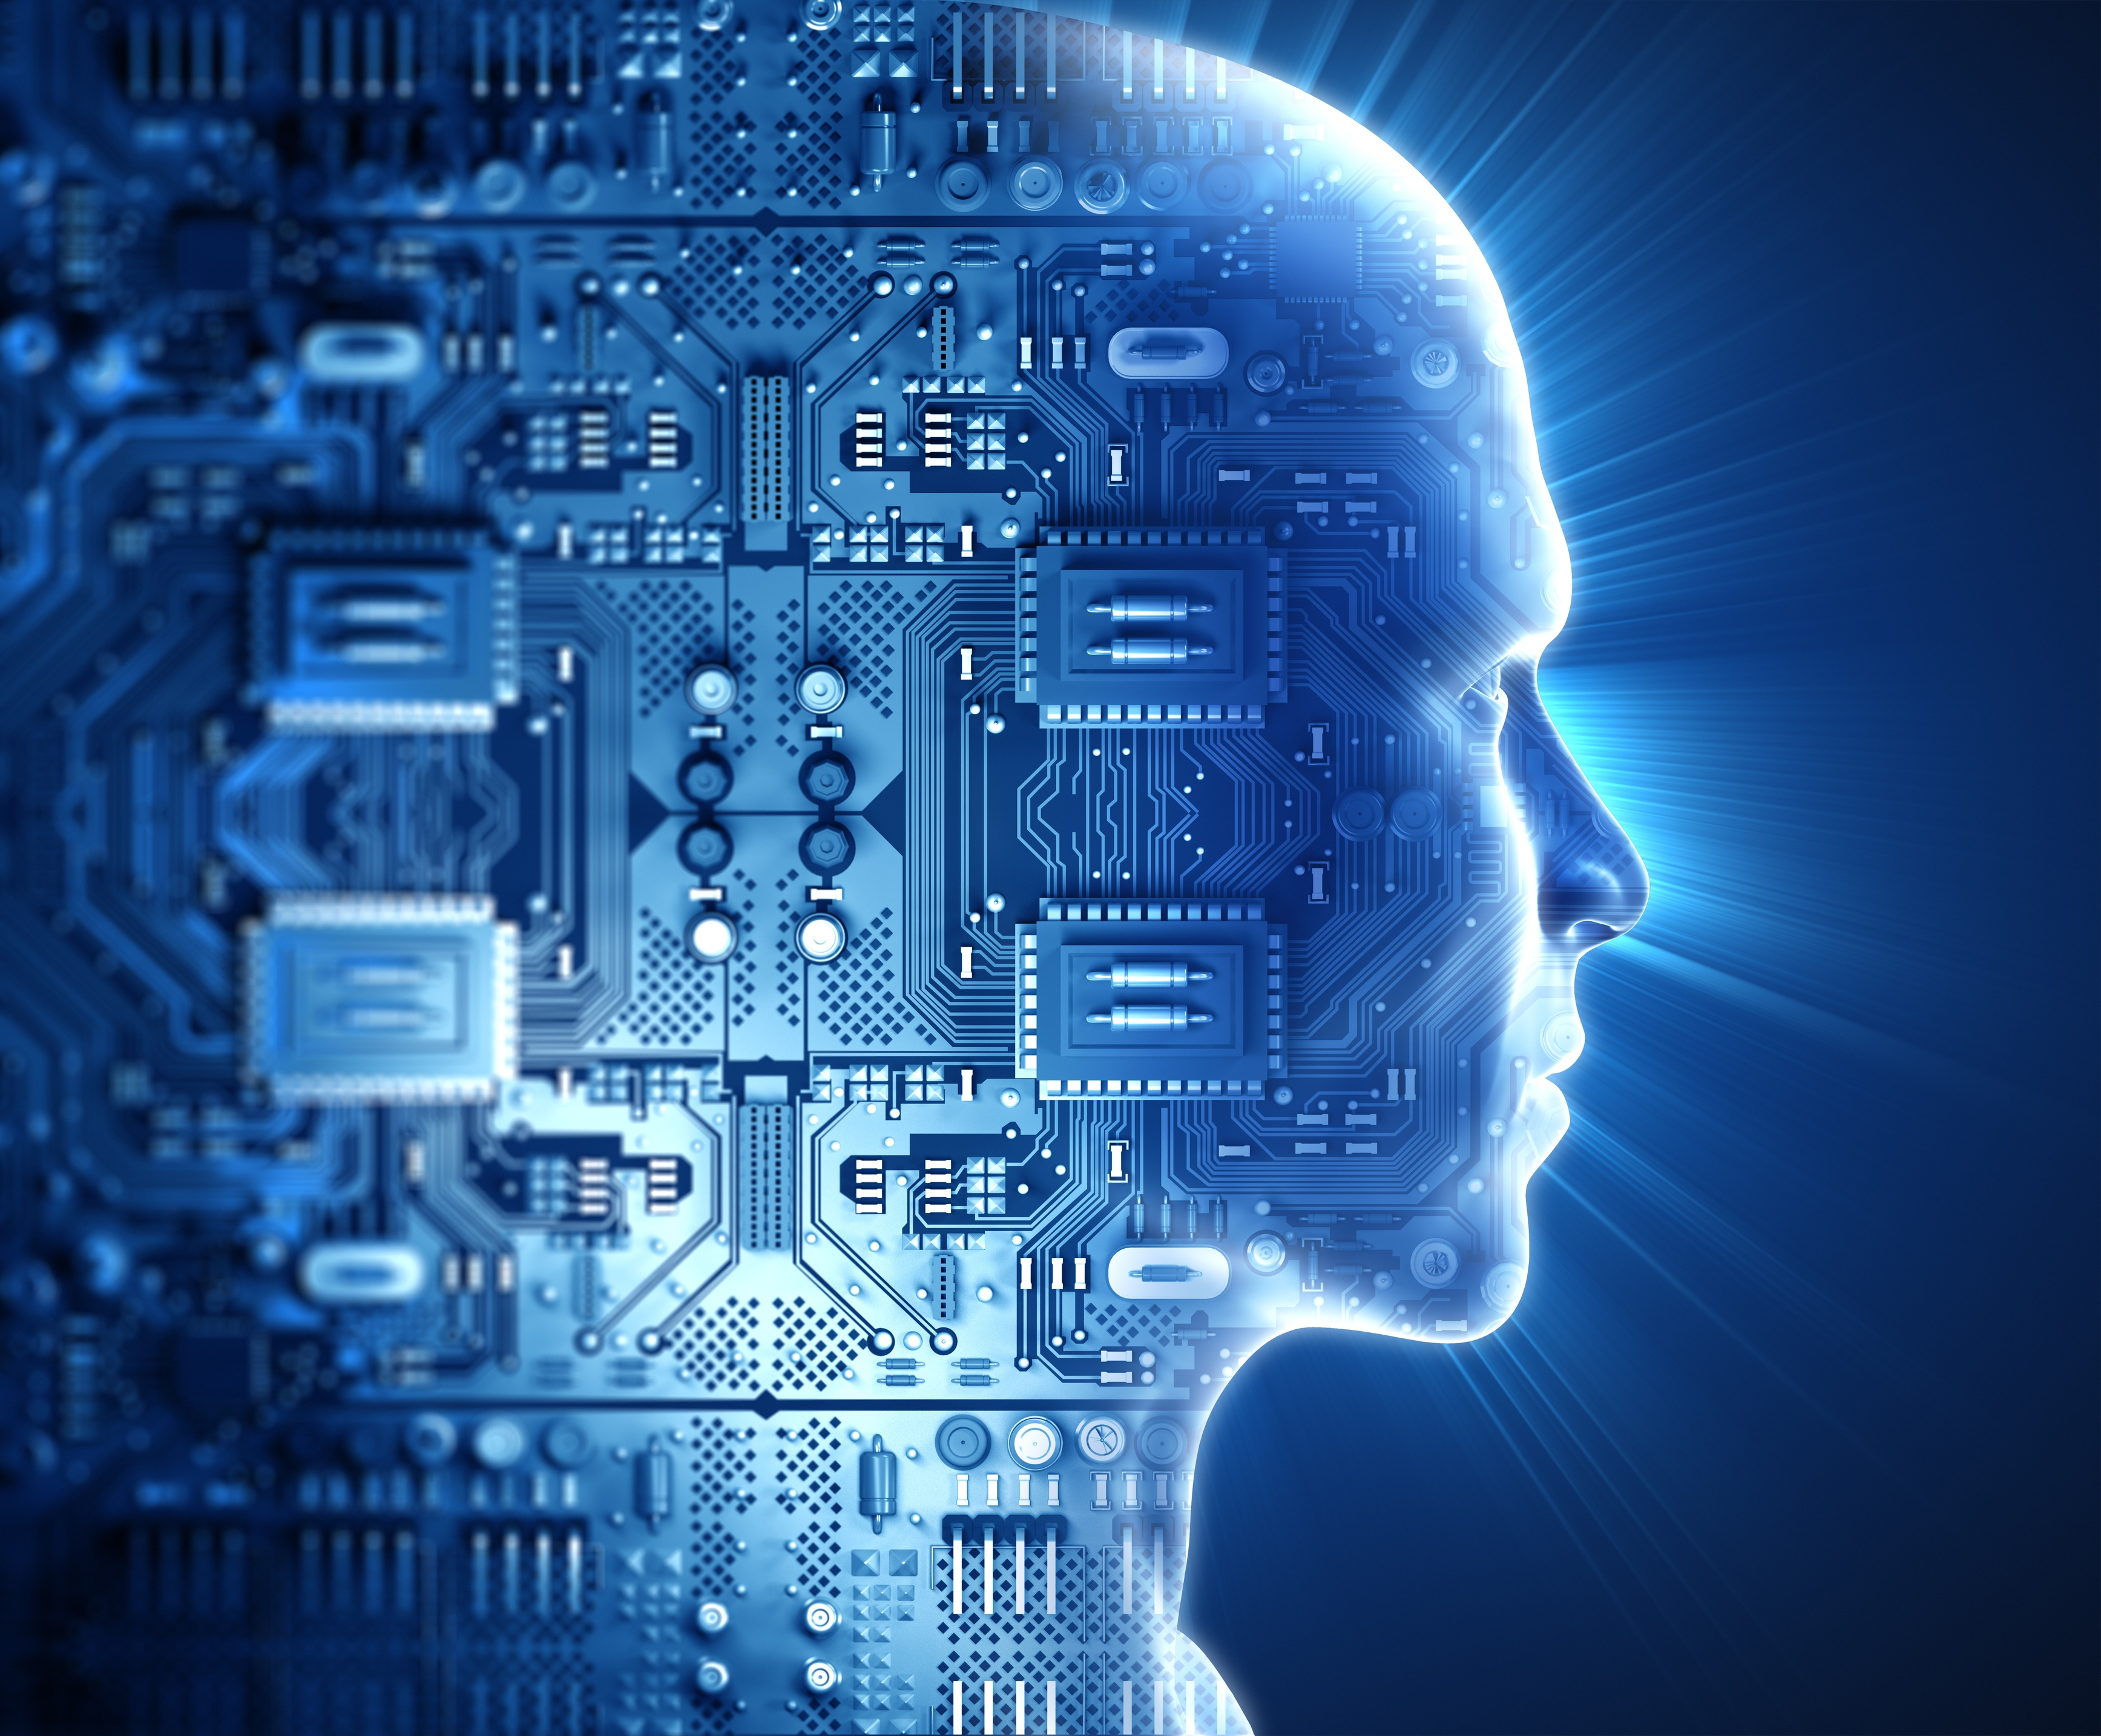 Intel Xeon Scalable Processor Powers the Future of AI